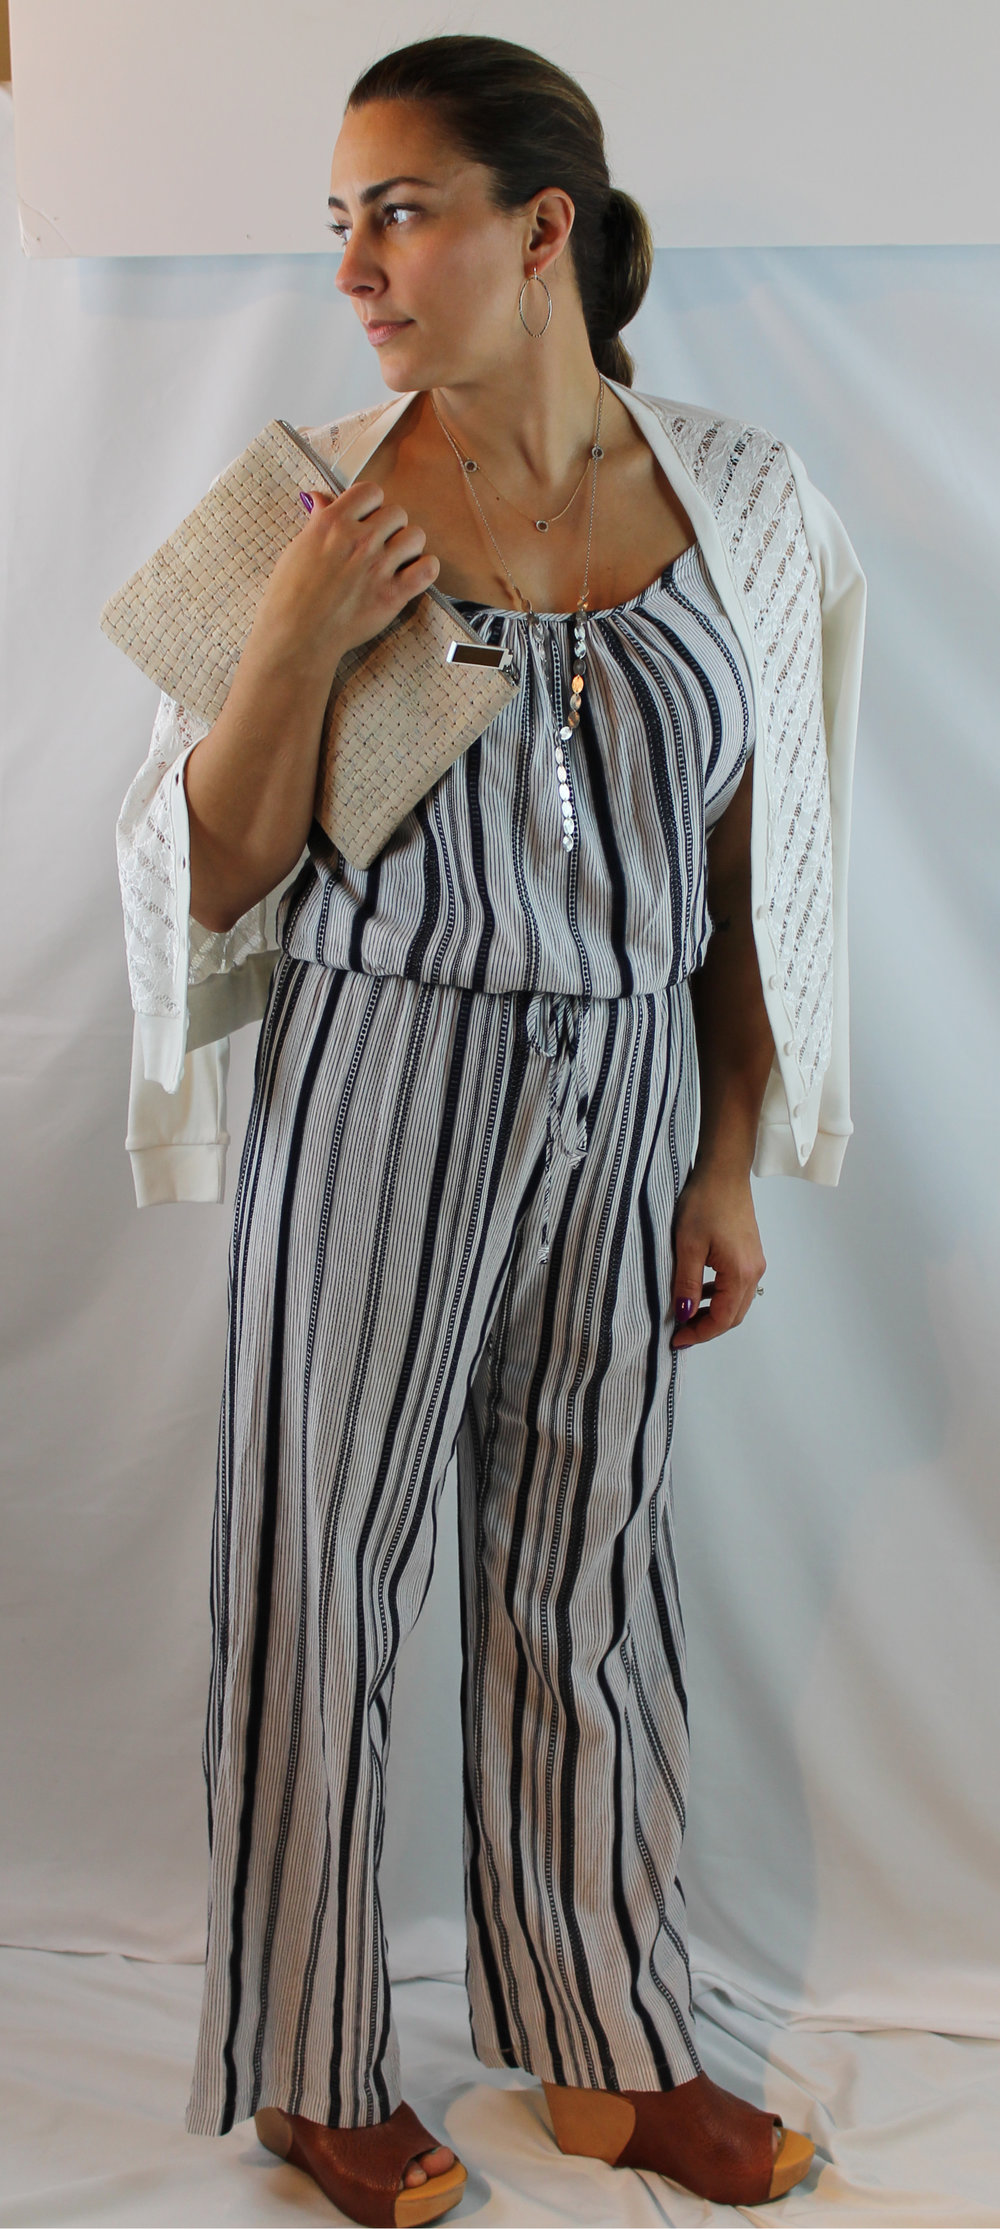 Click photo to shop this Fifteen Twenty stripe jumpsuit.